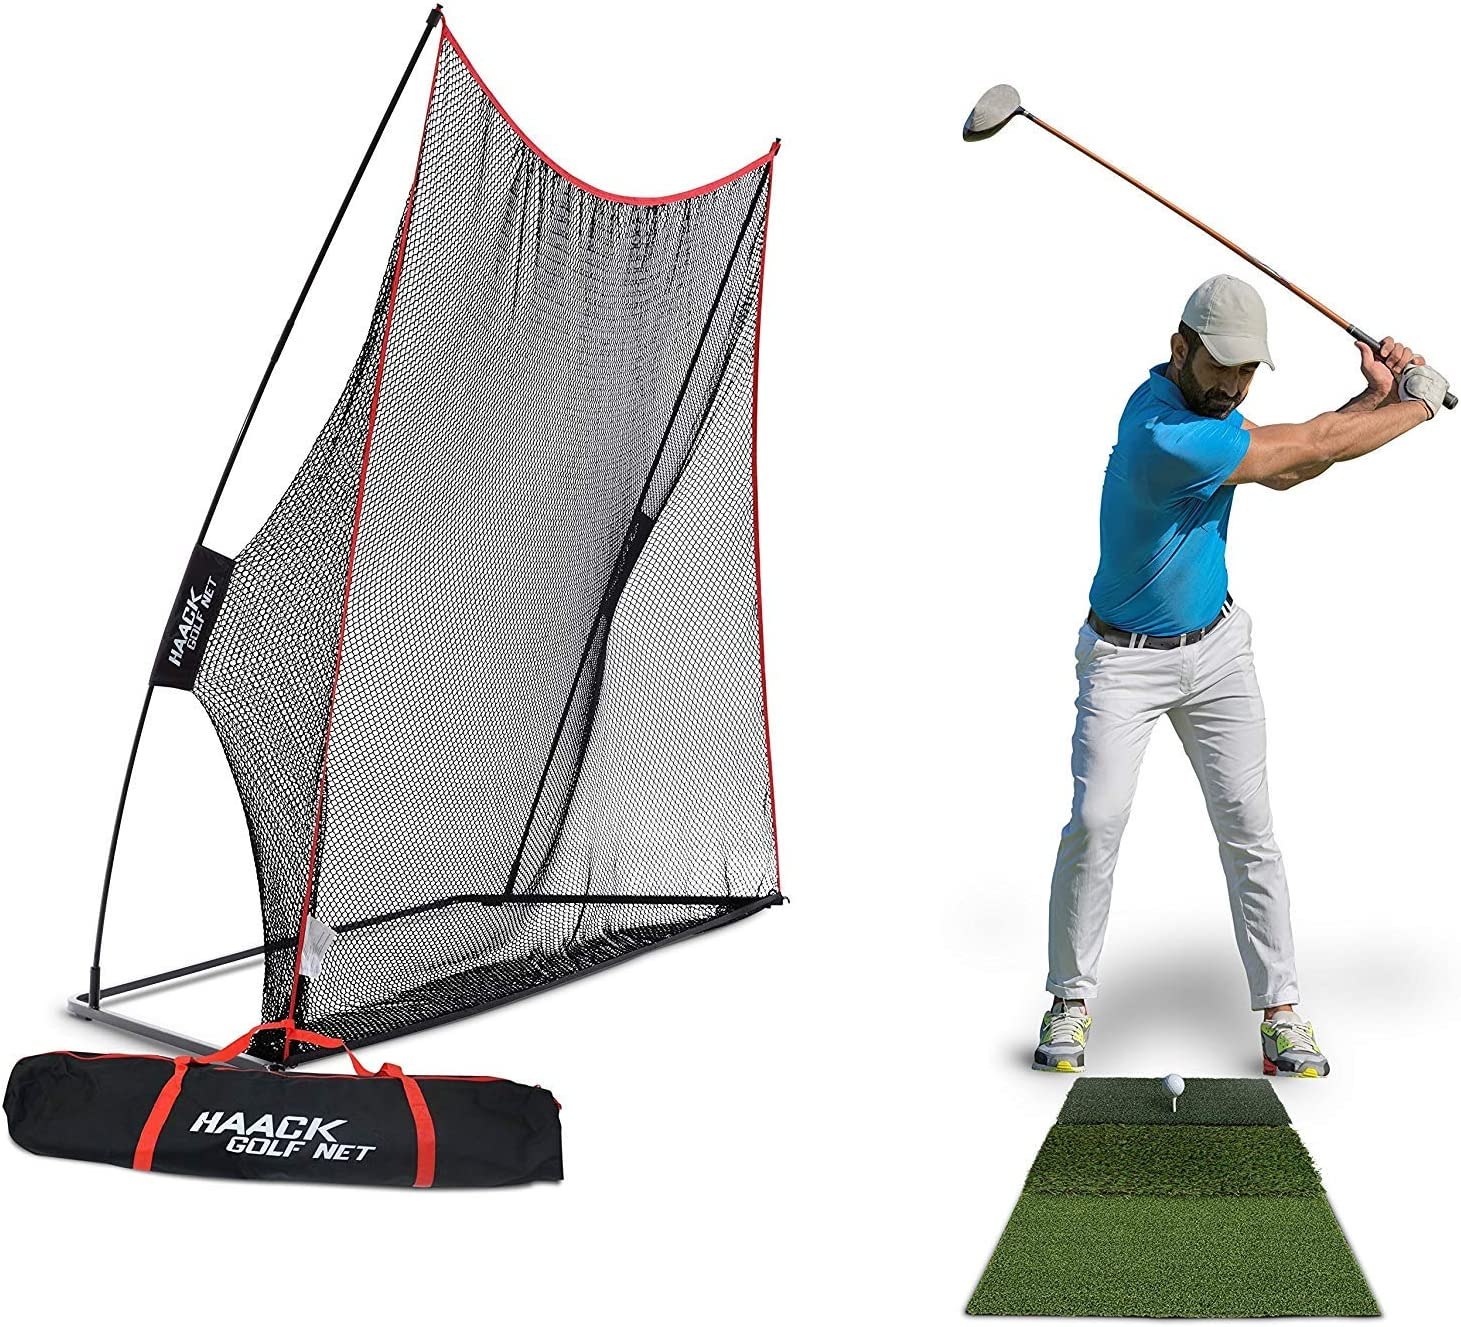 Rukket 3pc Golf Bundle 10x7ft Haack Golf Net Tri Turf Hitting Mat Carry Bag Practice Driving Indoor and Outdoor Golfing at Home Swing Training Aids by SEC Coach Chris Haack